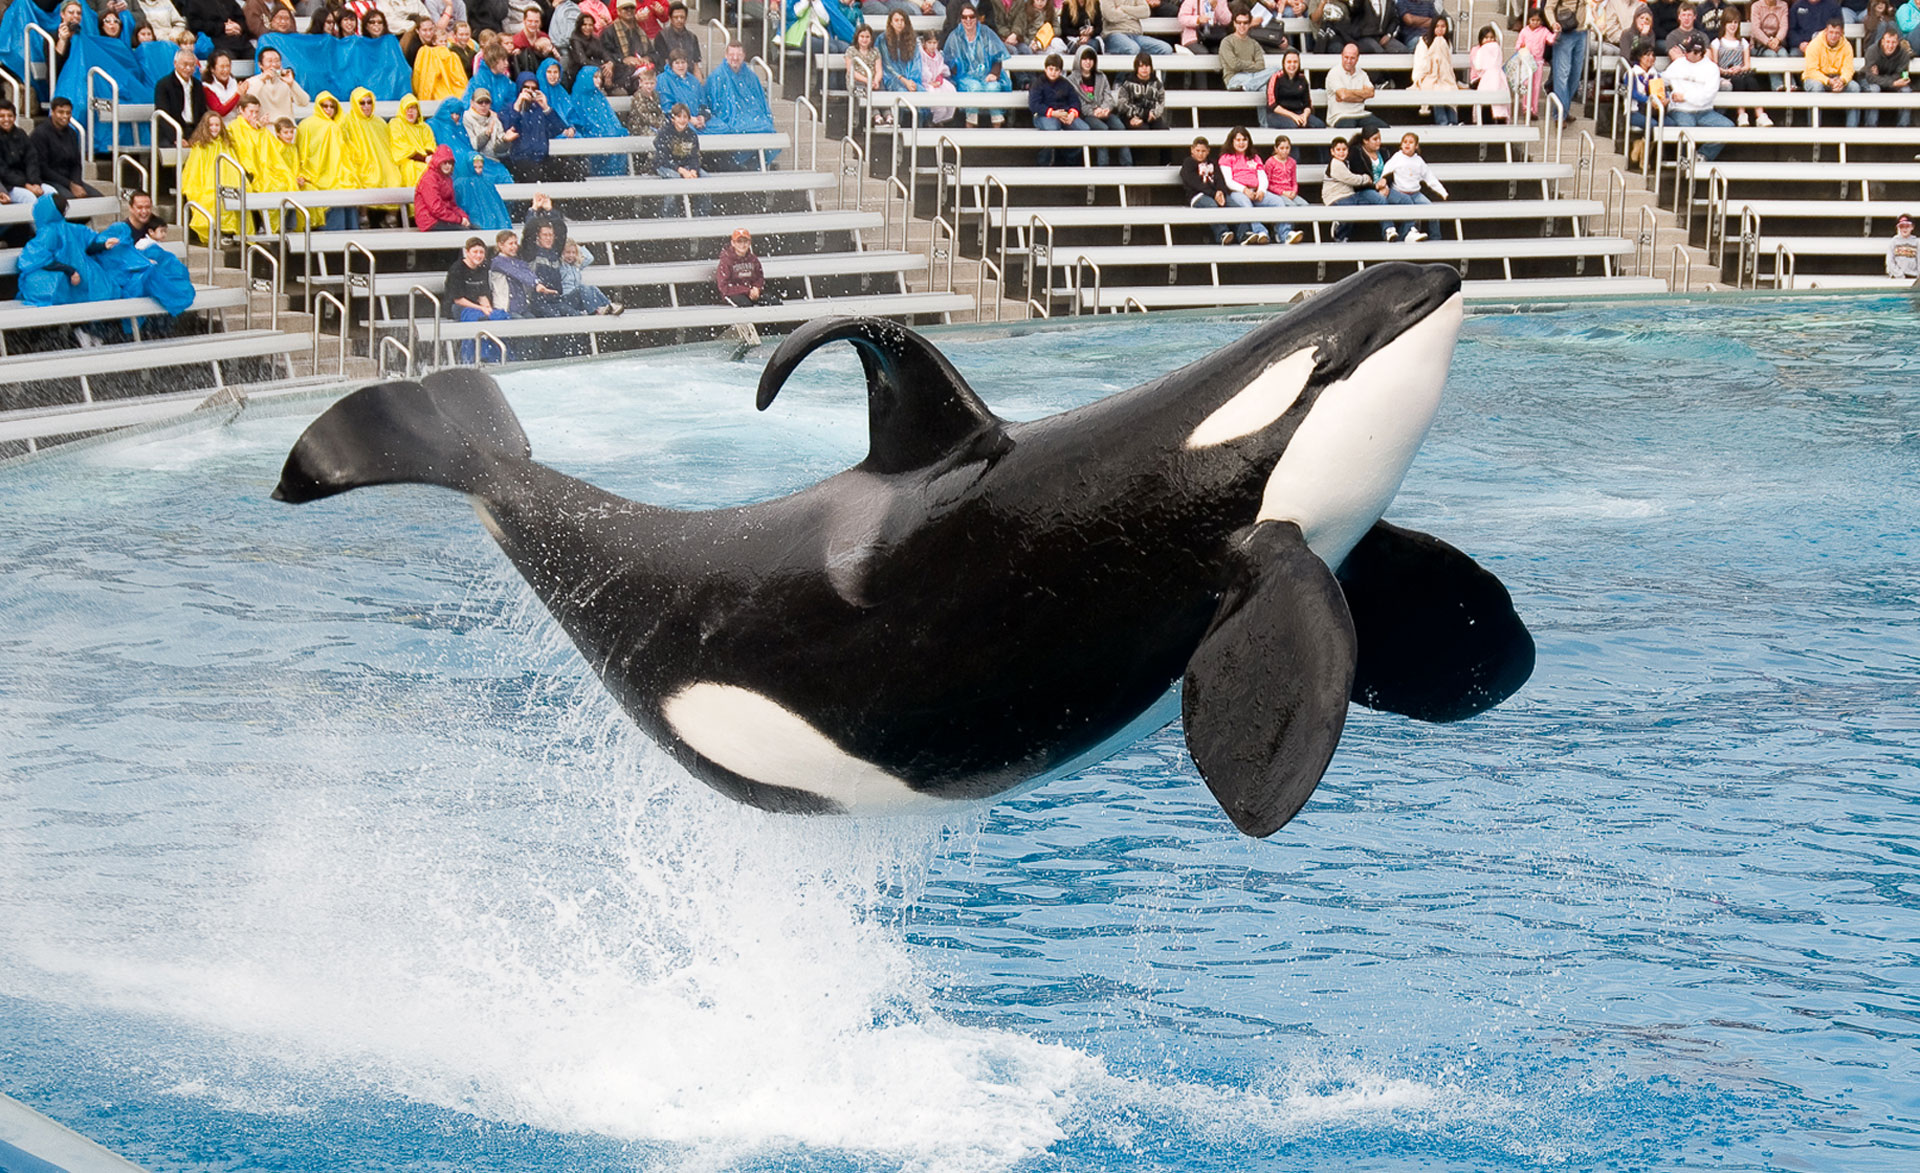 An orca performs at SeaWorld in San Diego.